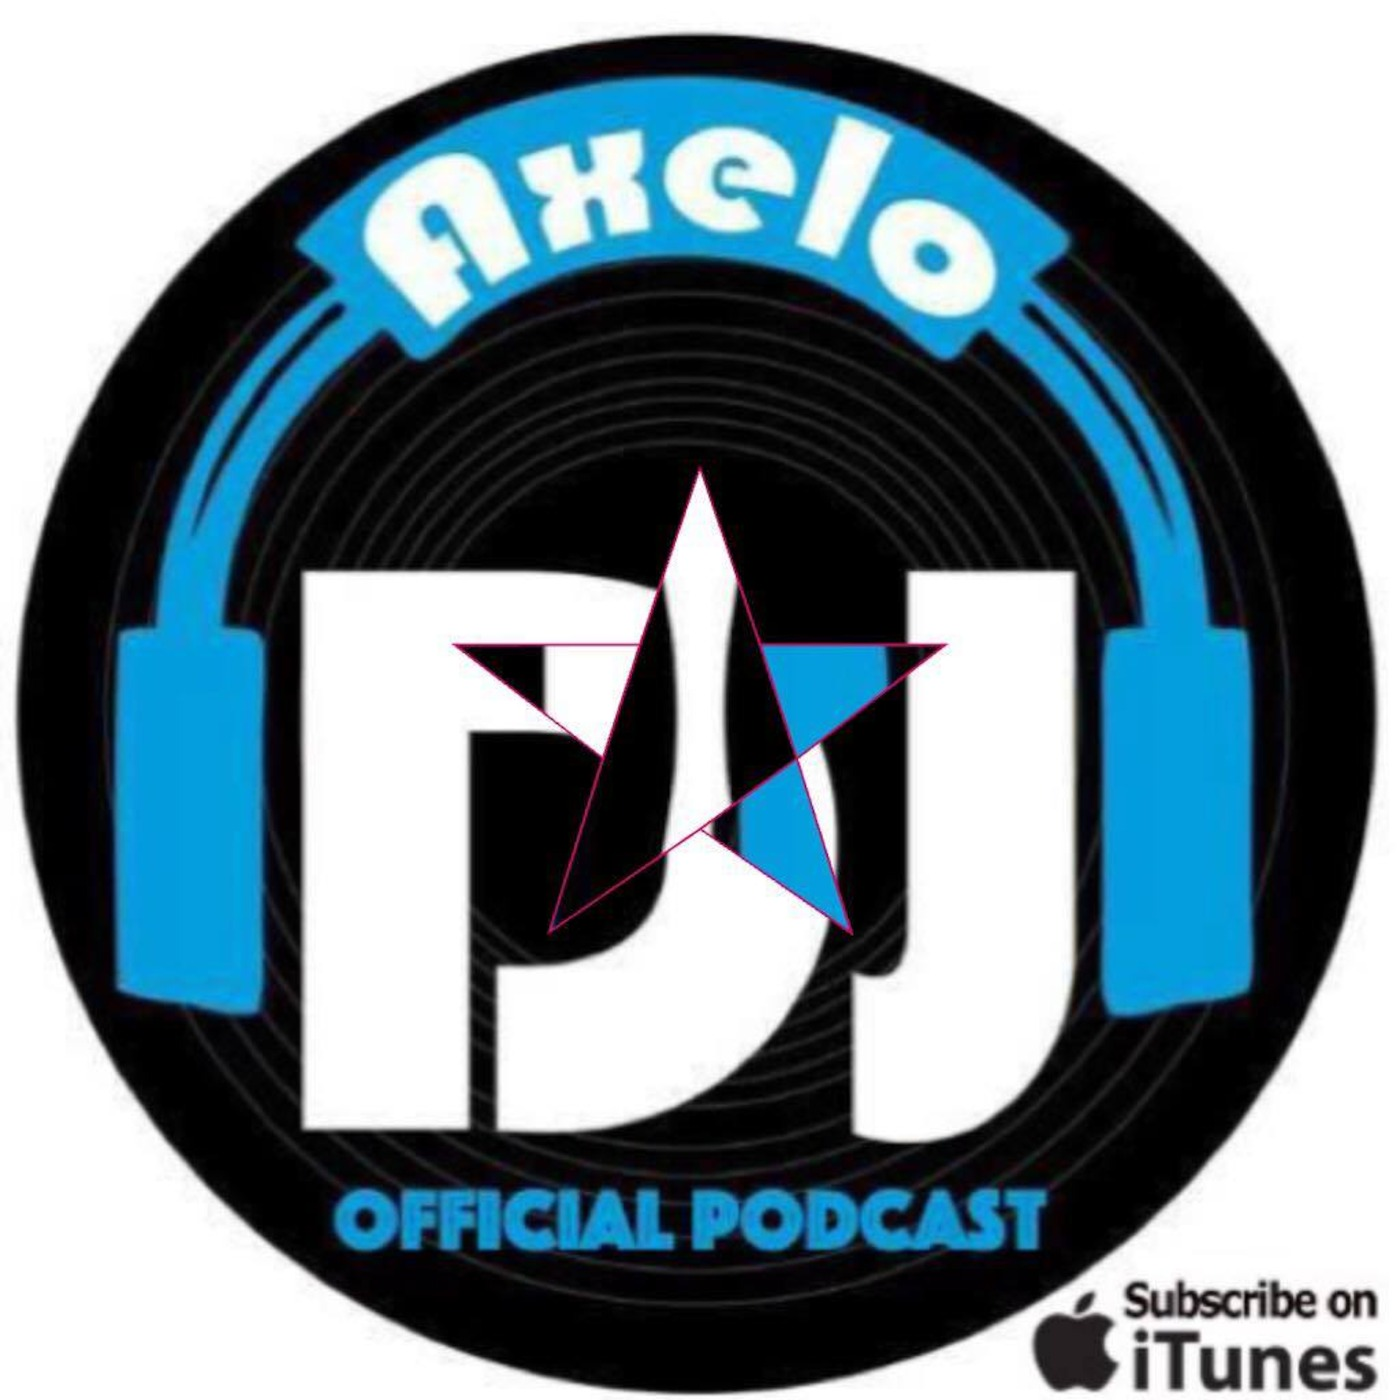 Λxelo's Official Podcast